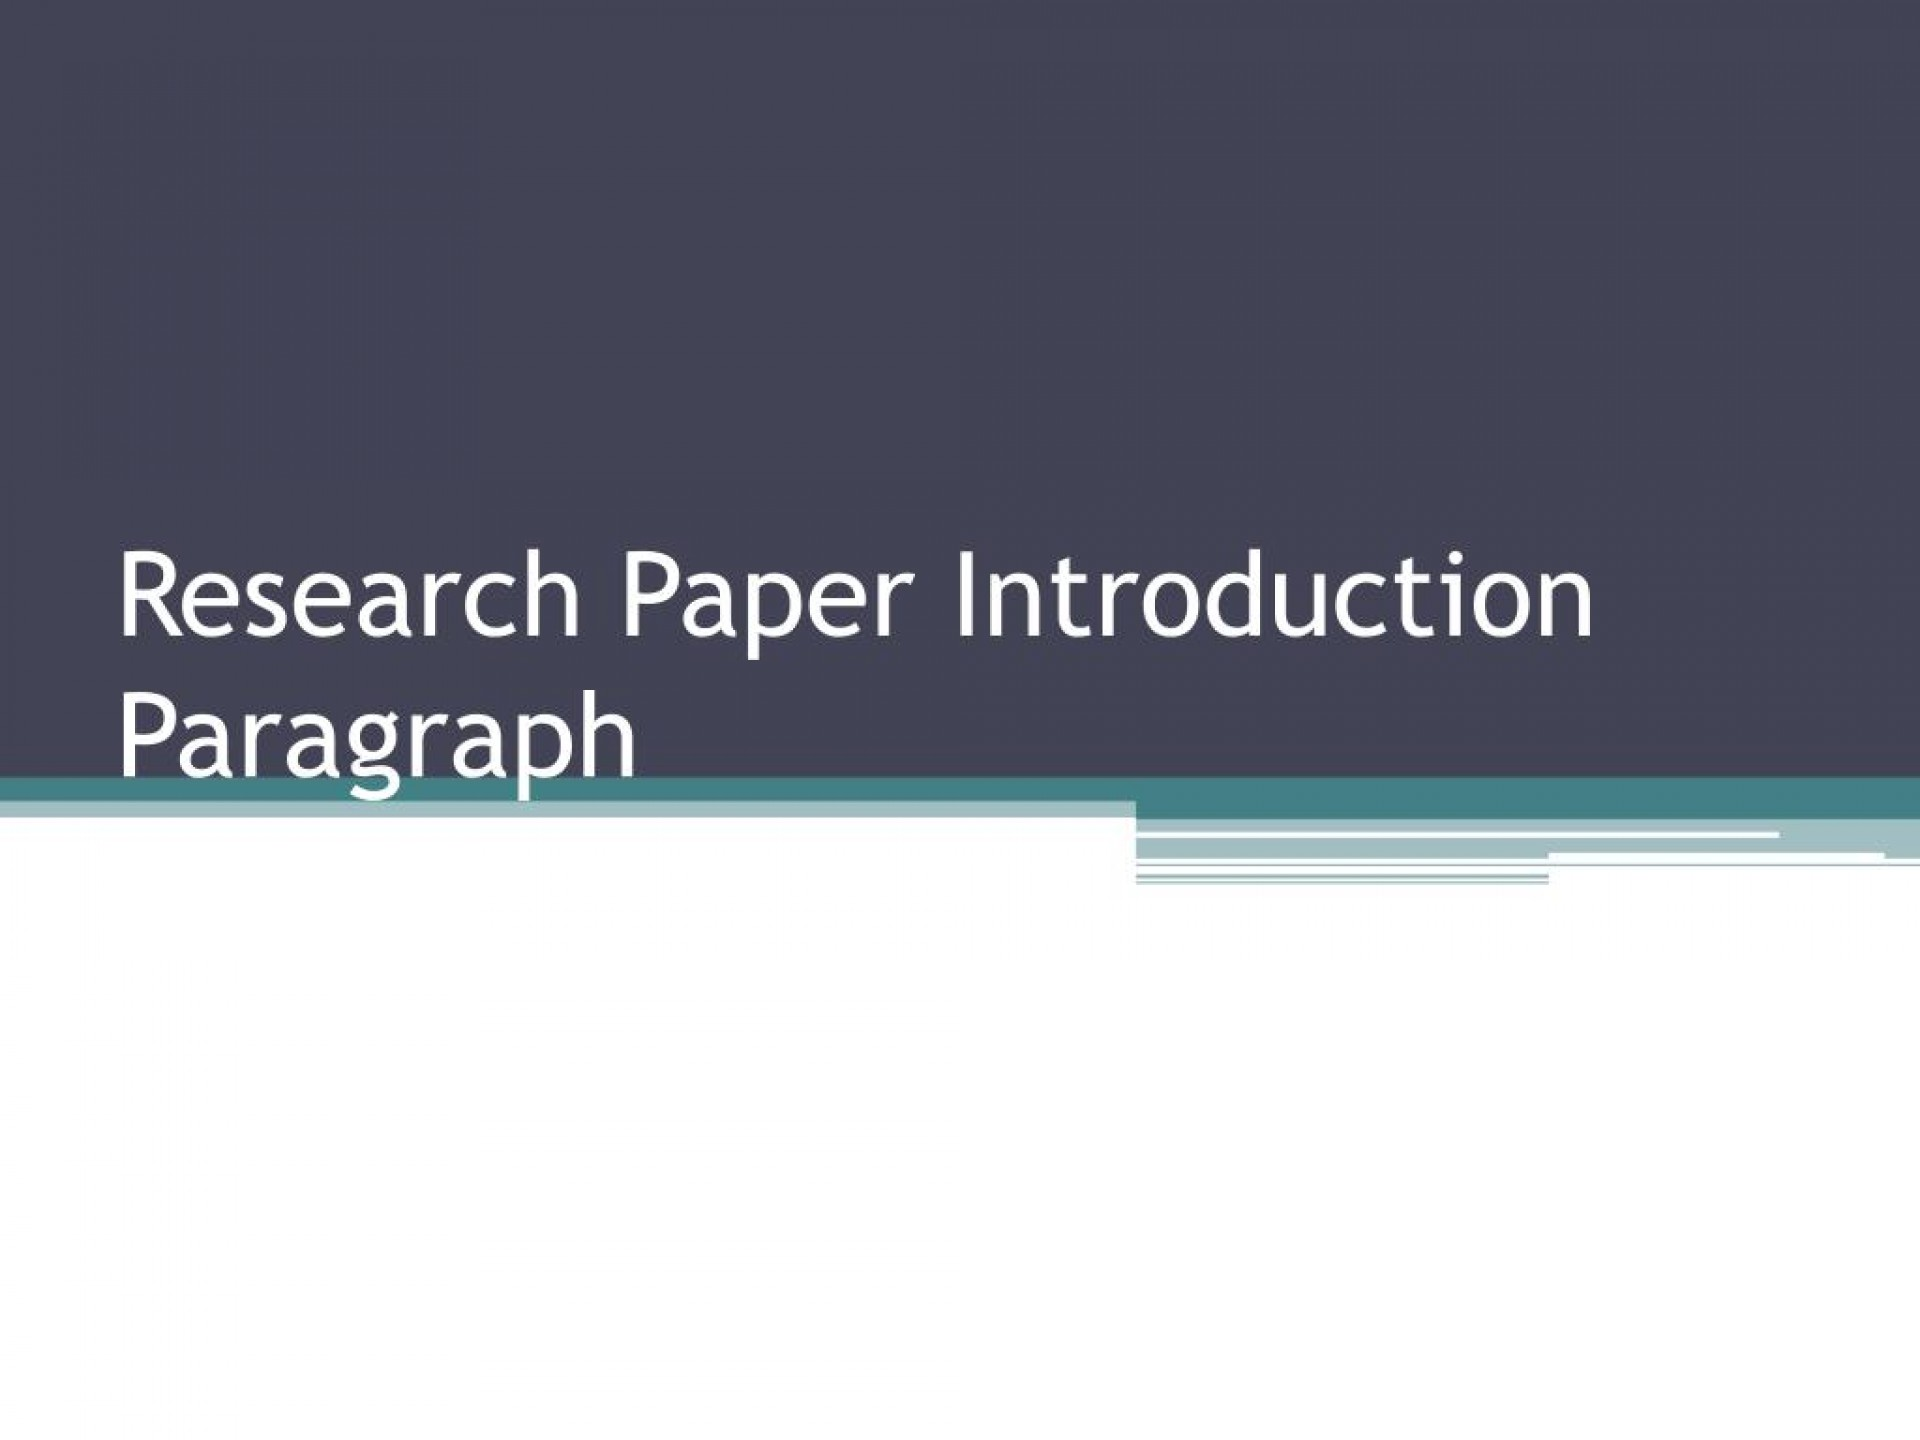 009 Research Paper Introduction Paragraph L To Outstanding Ppt How Write In An For A Powerpoint 1920